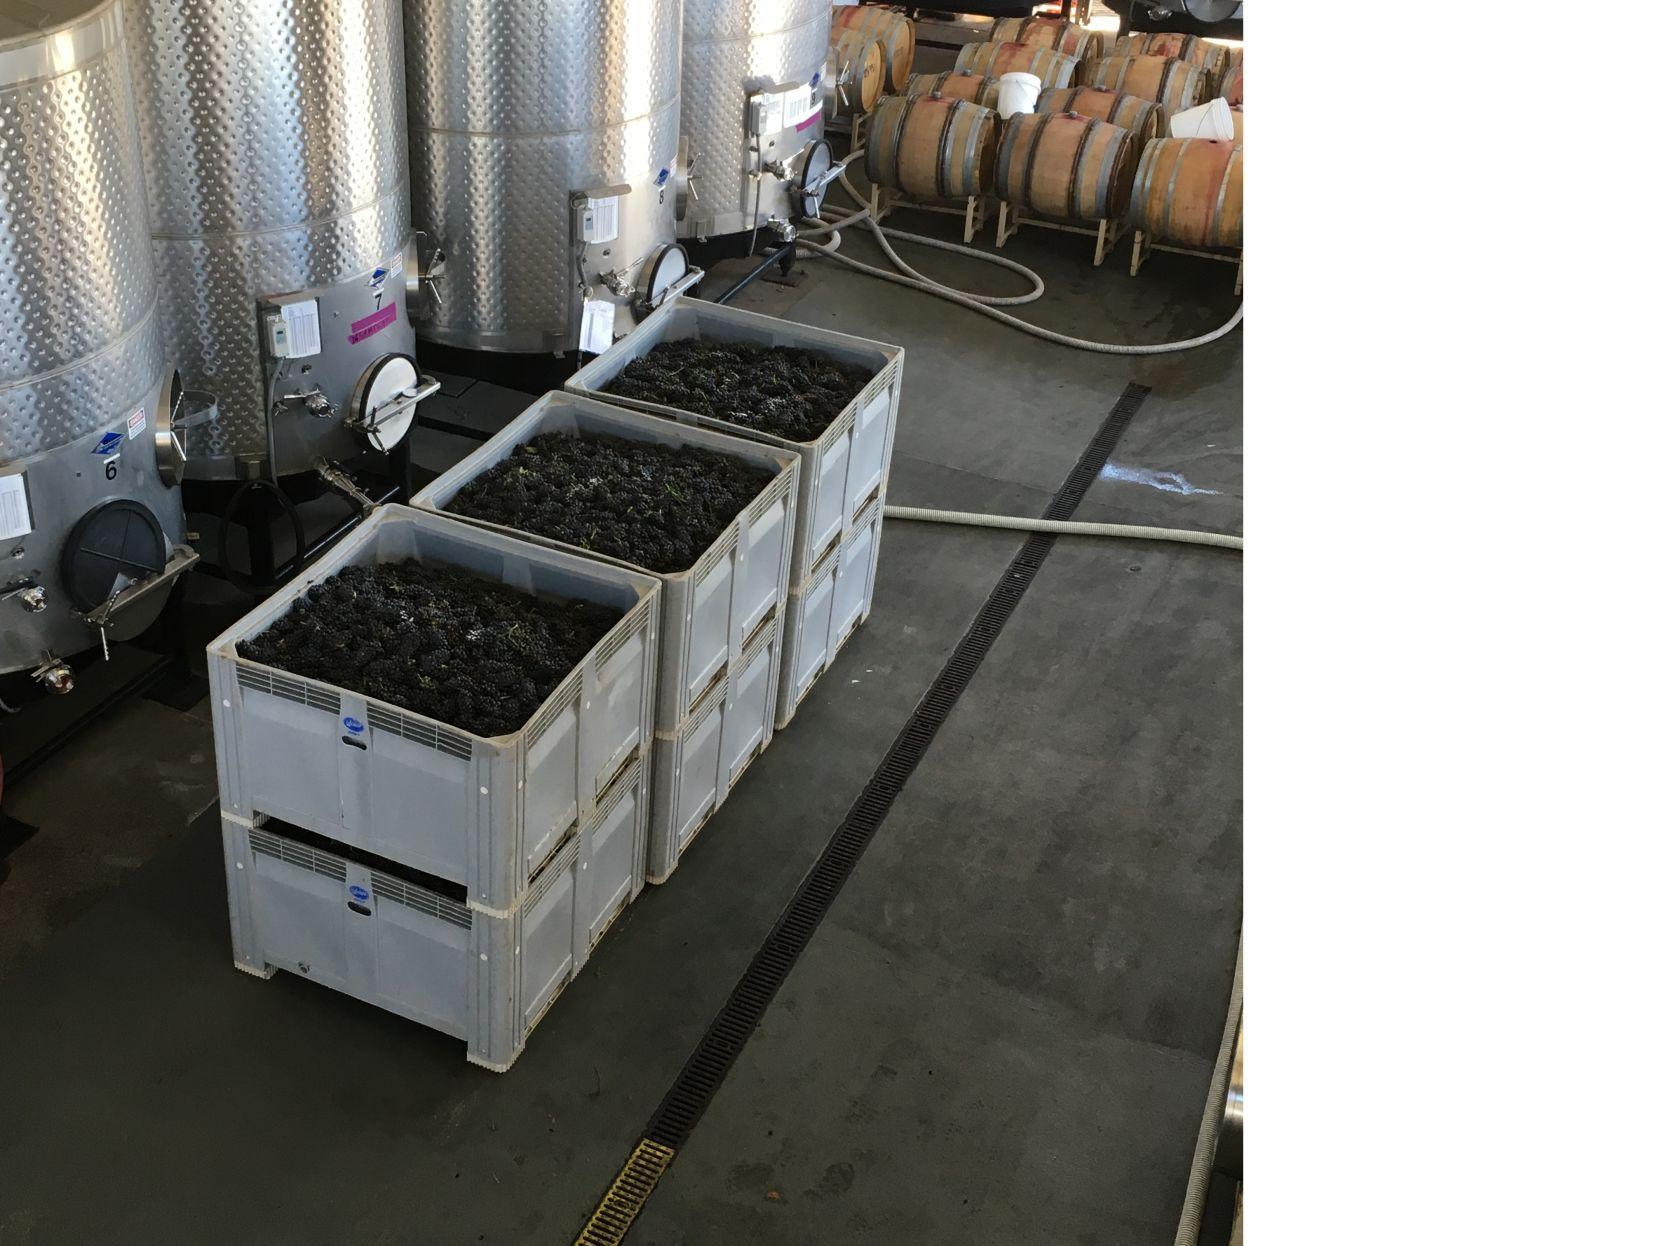 110 Camino Oruga Napa Ca Bigger Bin To Bottle Wins Napa County Planning Commission Approval